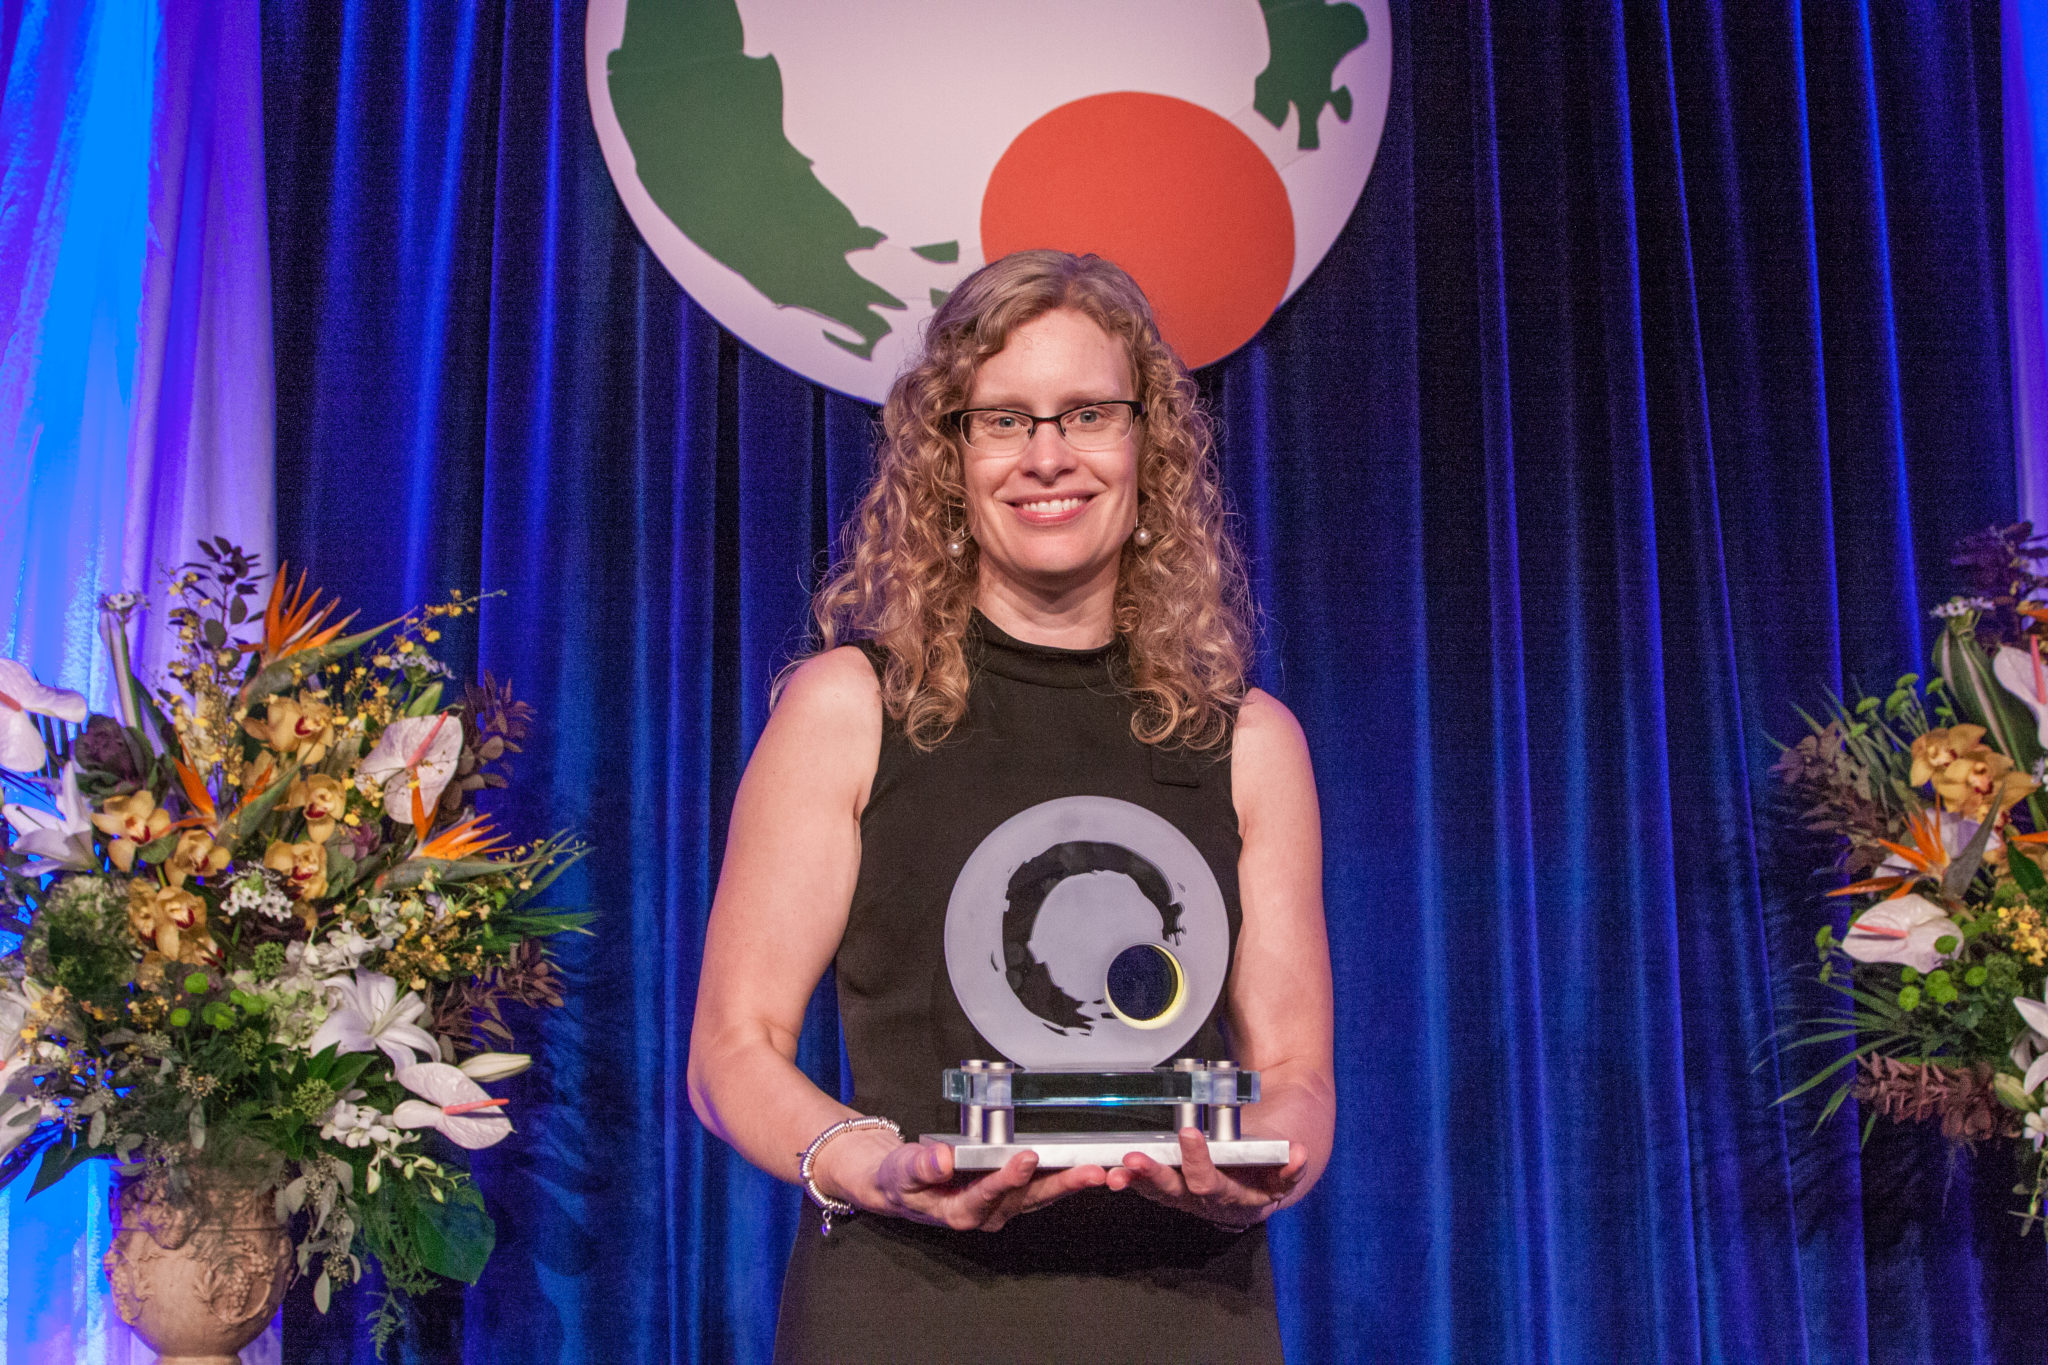 Dr. Heather Boon, 2015 Dr. Rogers Prize Winner